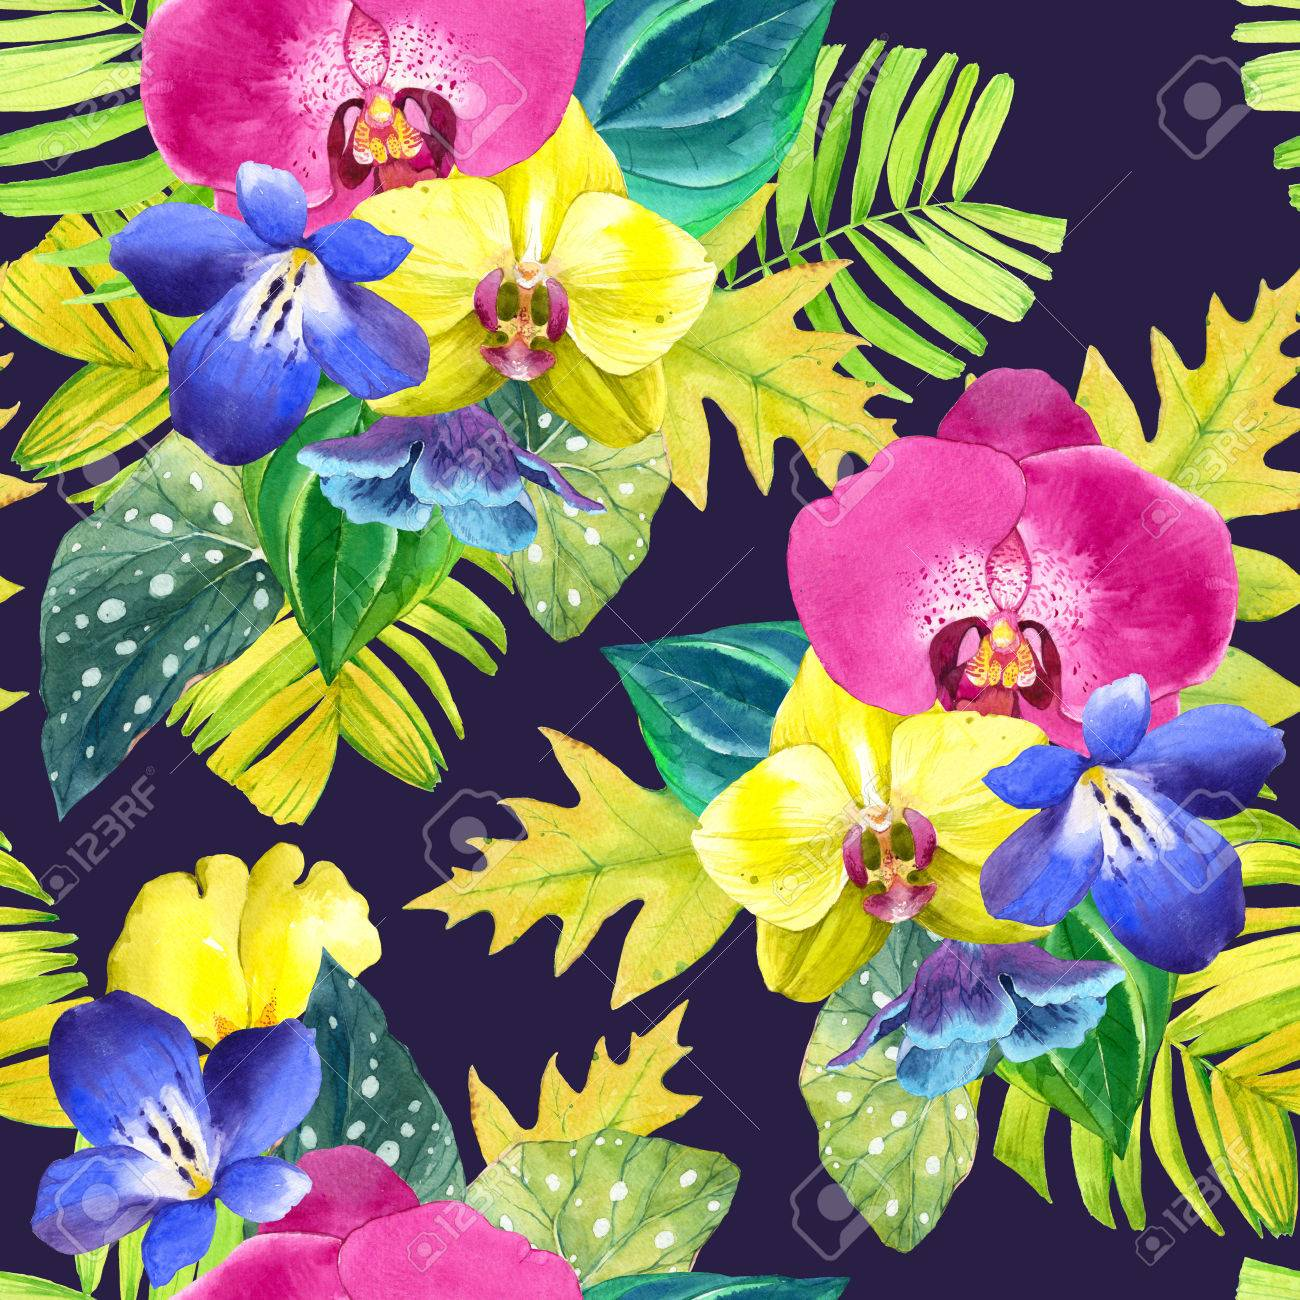 Seamless background with watercolor tropical flowers bouquet seamless background with watercolor tropical flowers bouquet with tropical plants on black and white background izmirmasajfo